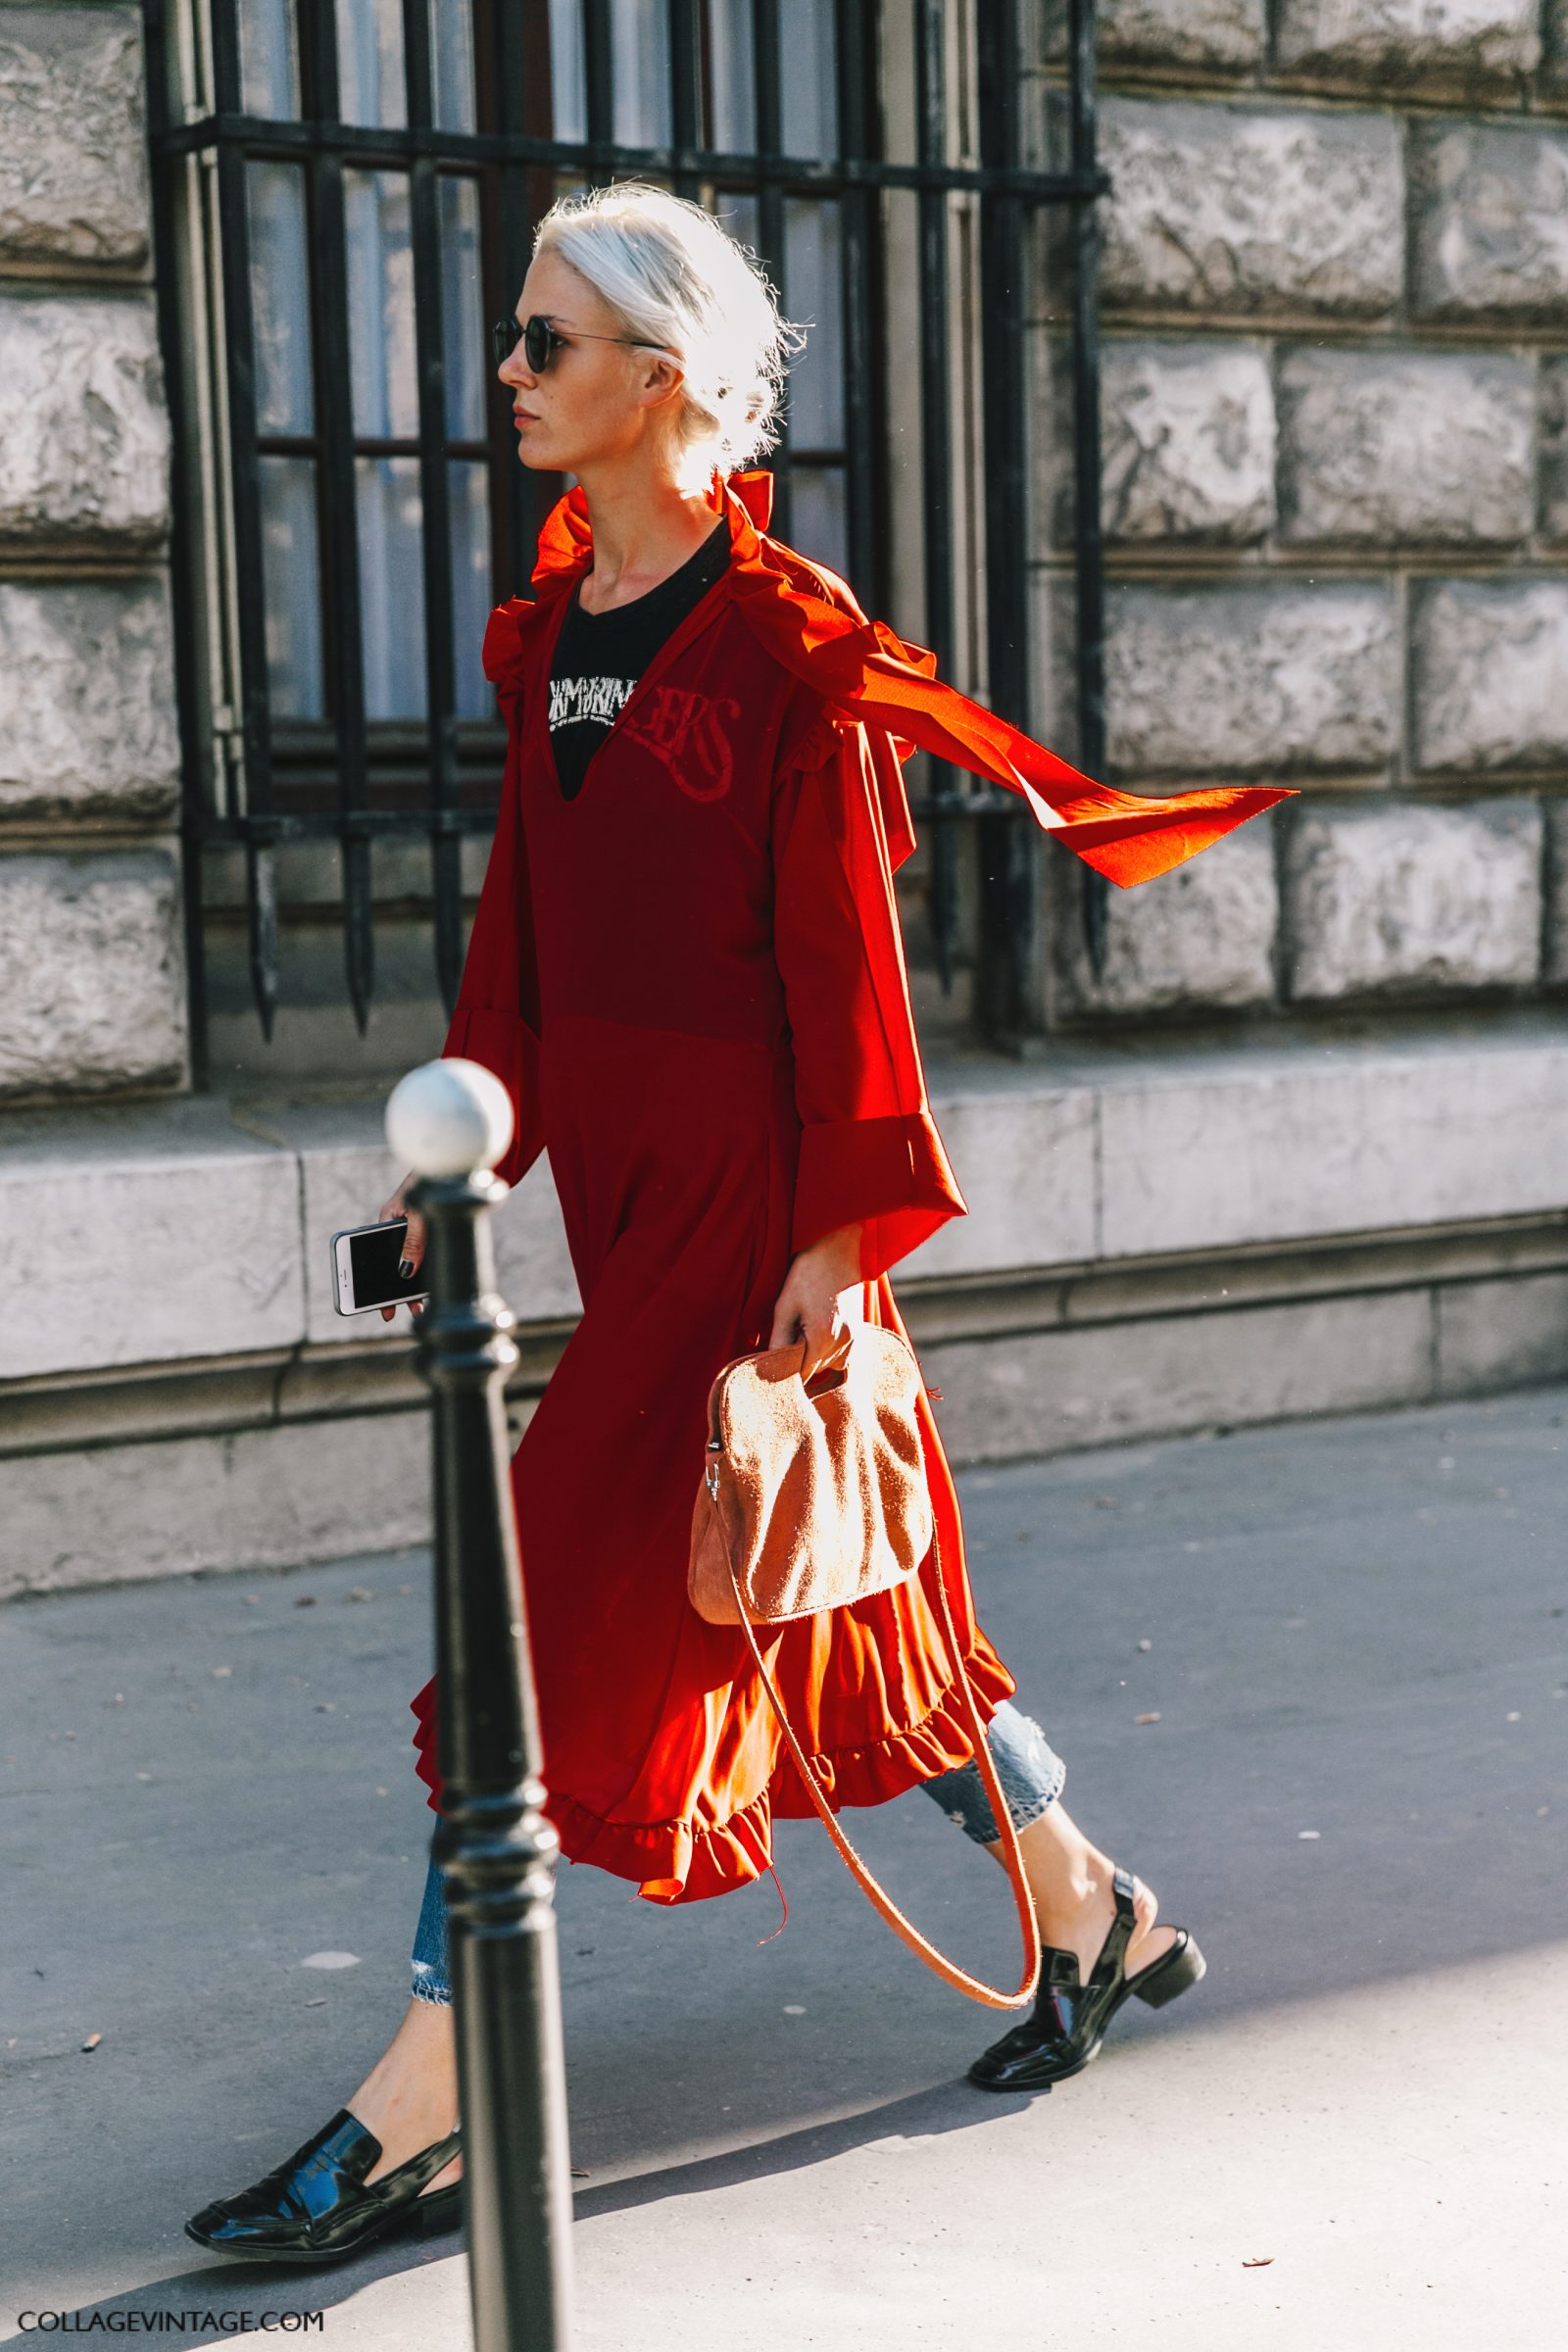 pfw-paris_fashion_week_ss17-street_style-outfits-collage_vintage-olympia_letan-hermes-stella_mccartney-sacai-222